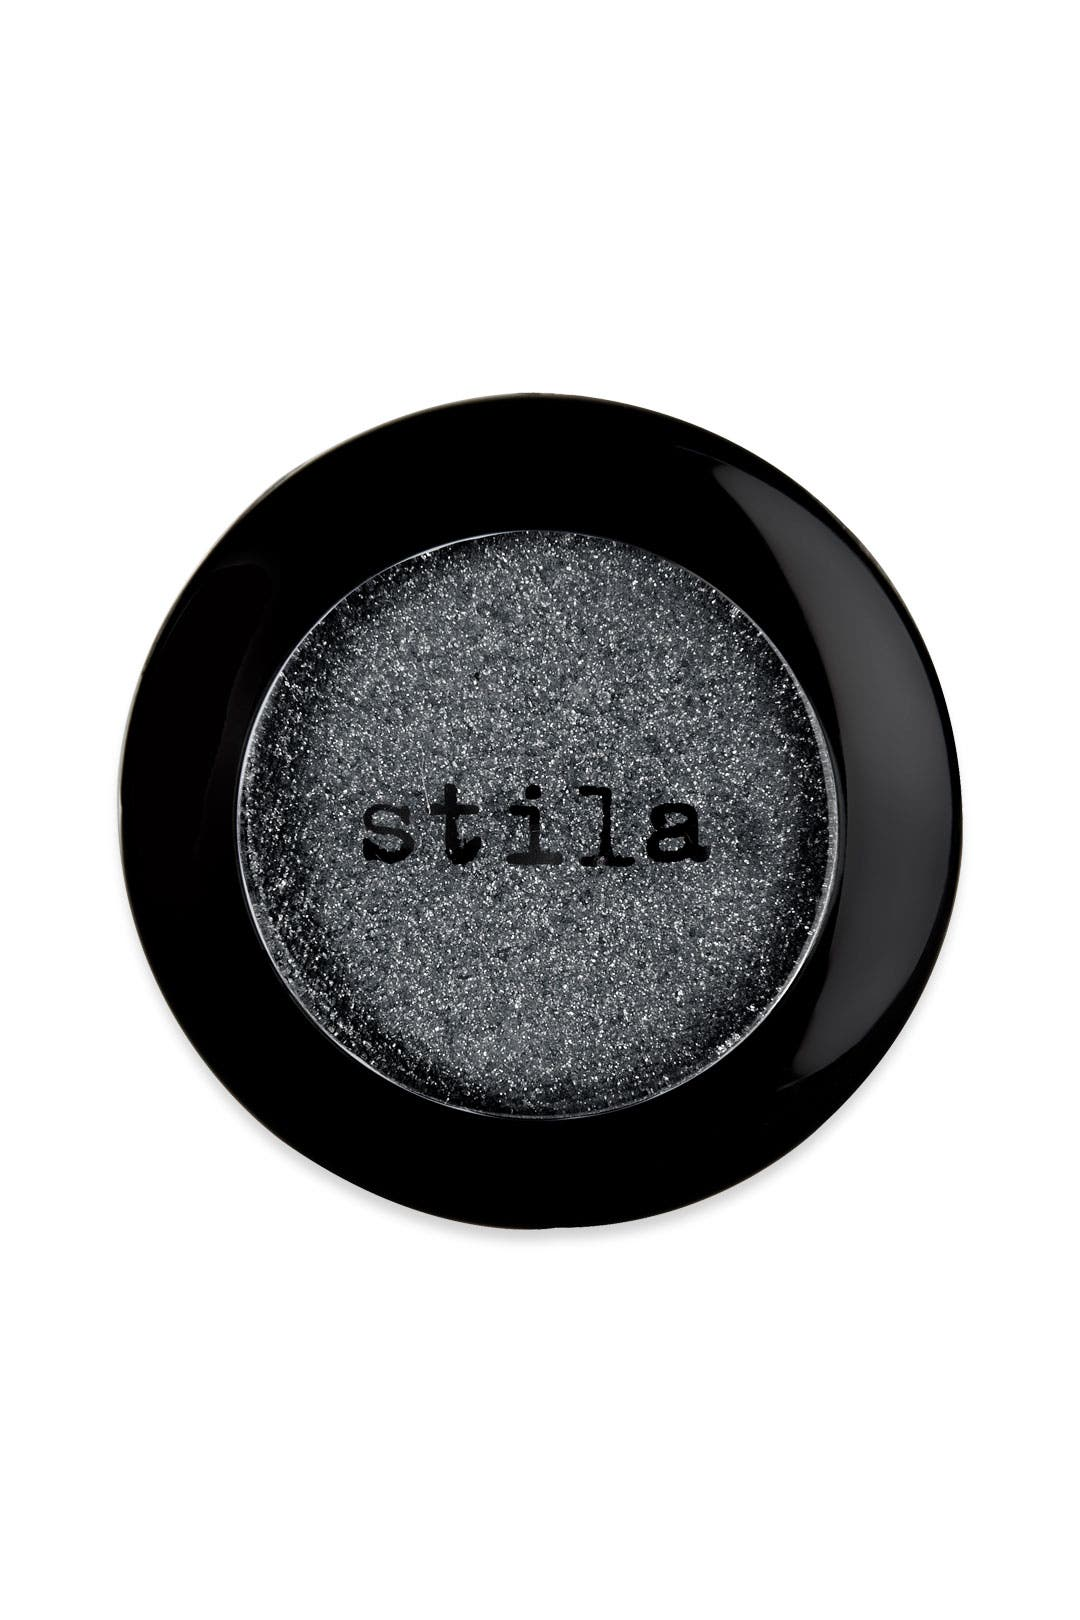 jewel eye shadow in black diamond by stila